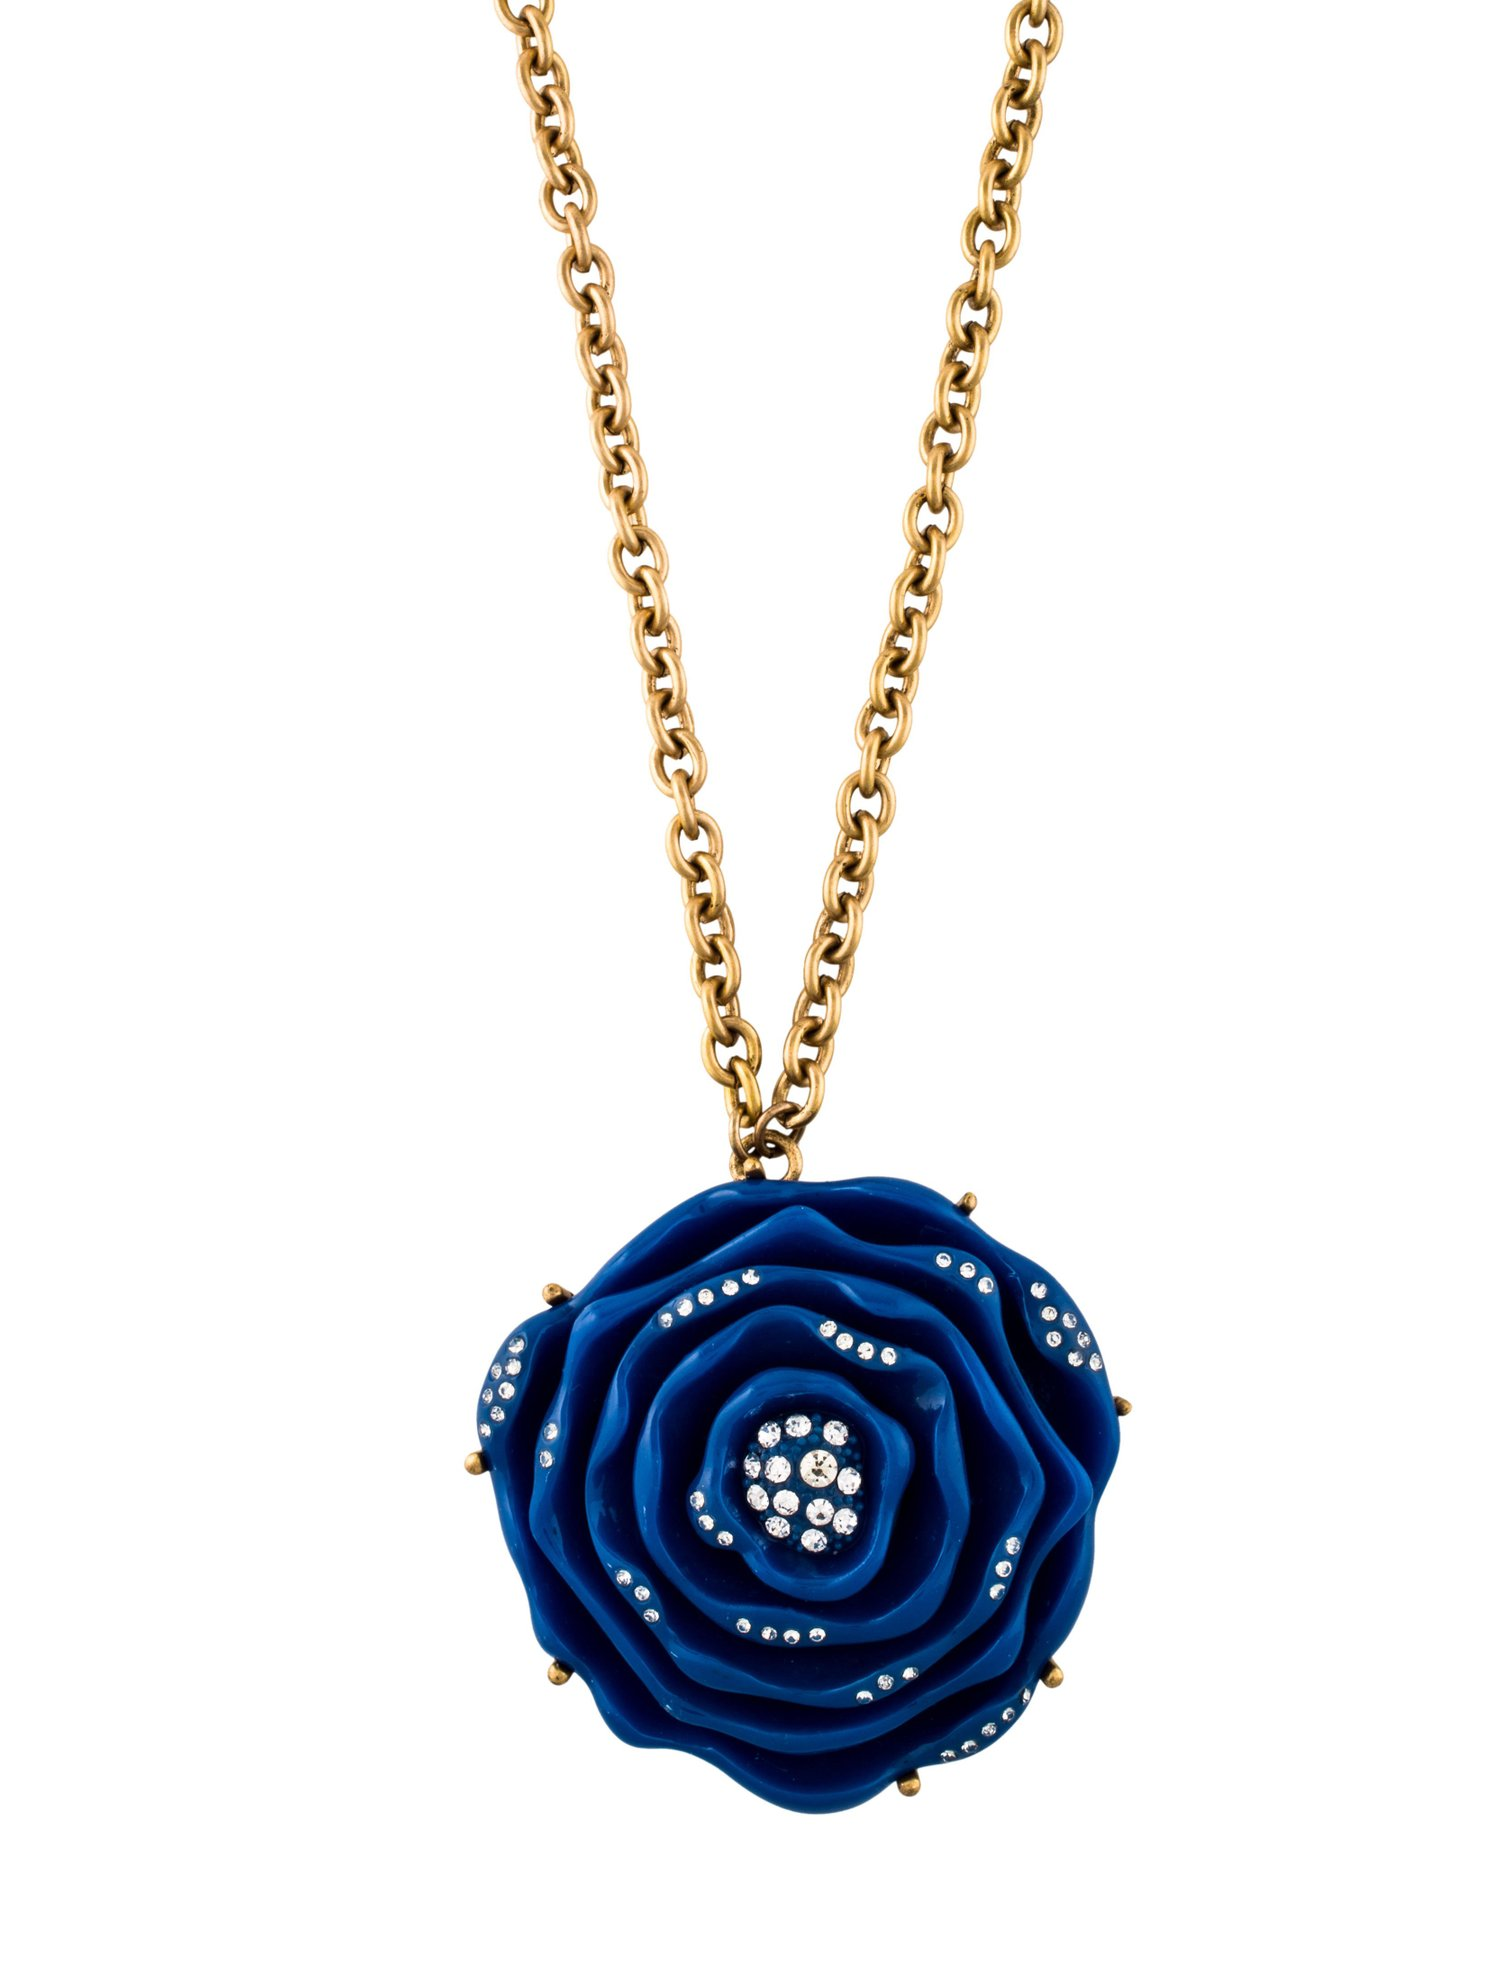 Oscar-De-La-Renta-Blue-resin-Rose-Pendant-Statement--Necklace-Designer-Jewelry_11122A.jpg